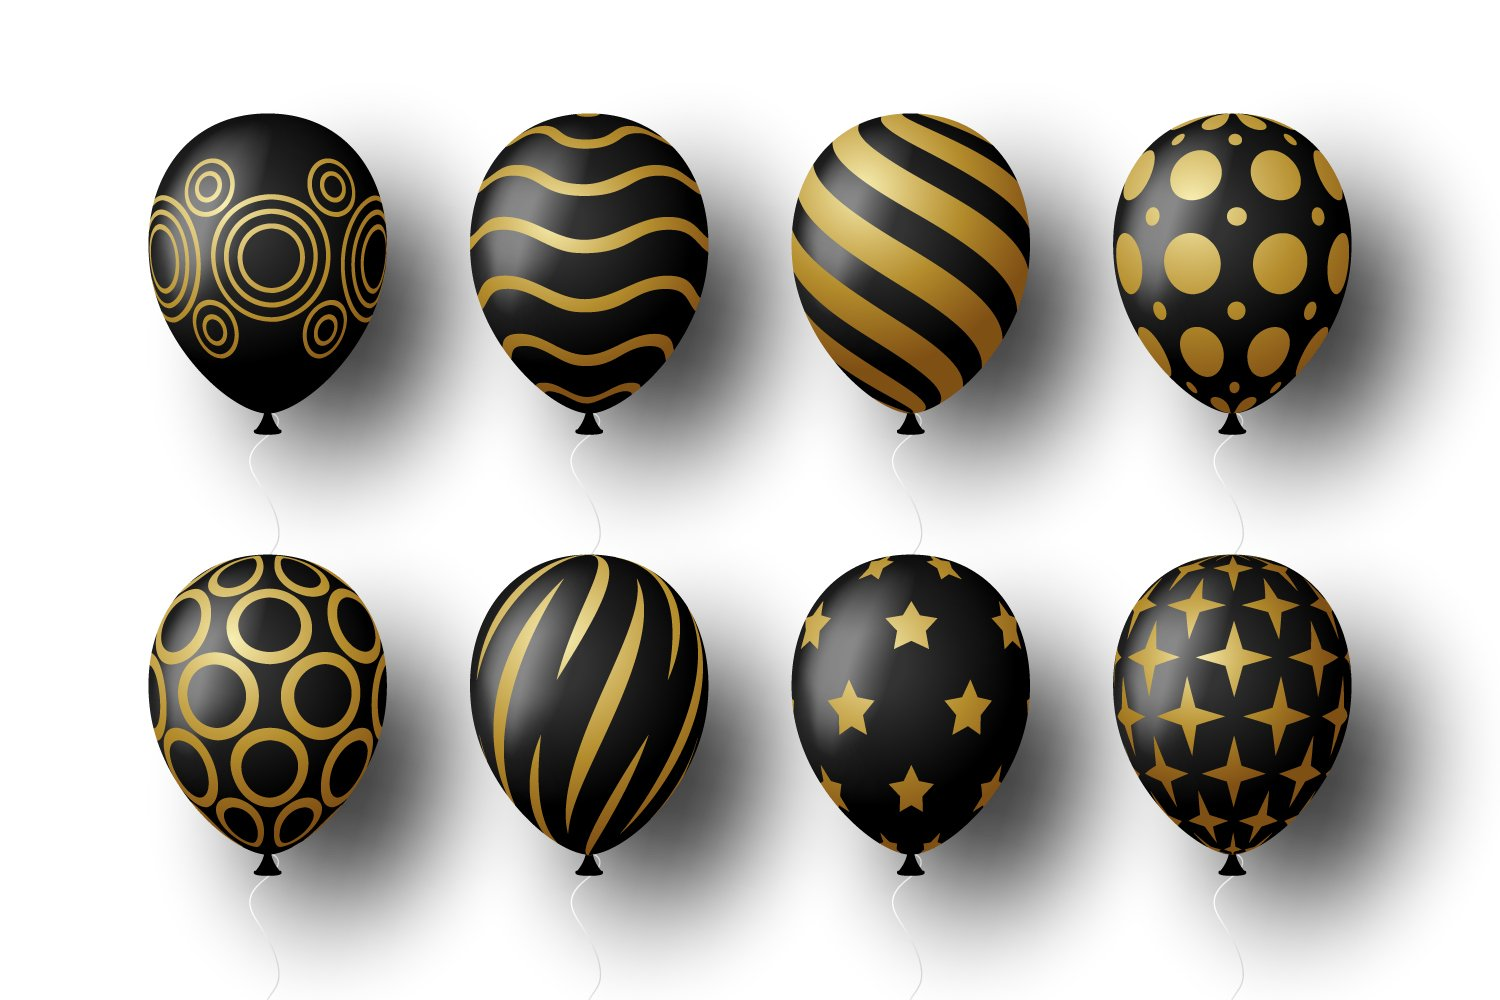 White background, black balls with gold ornaments.